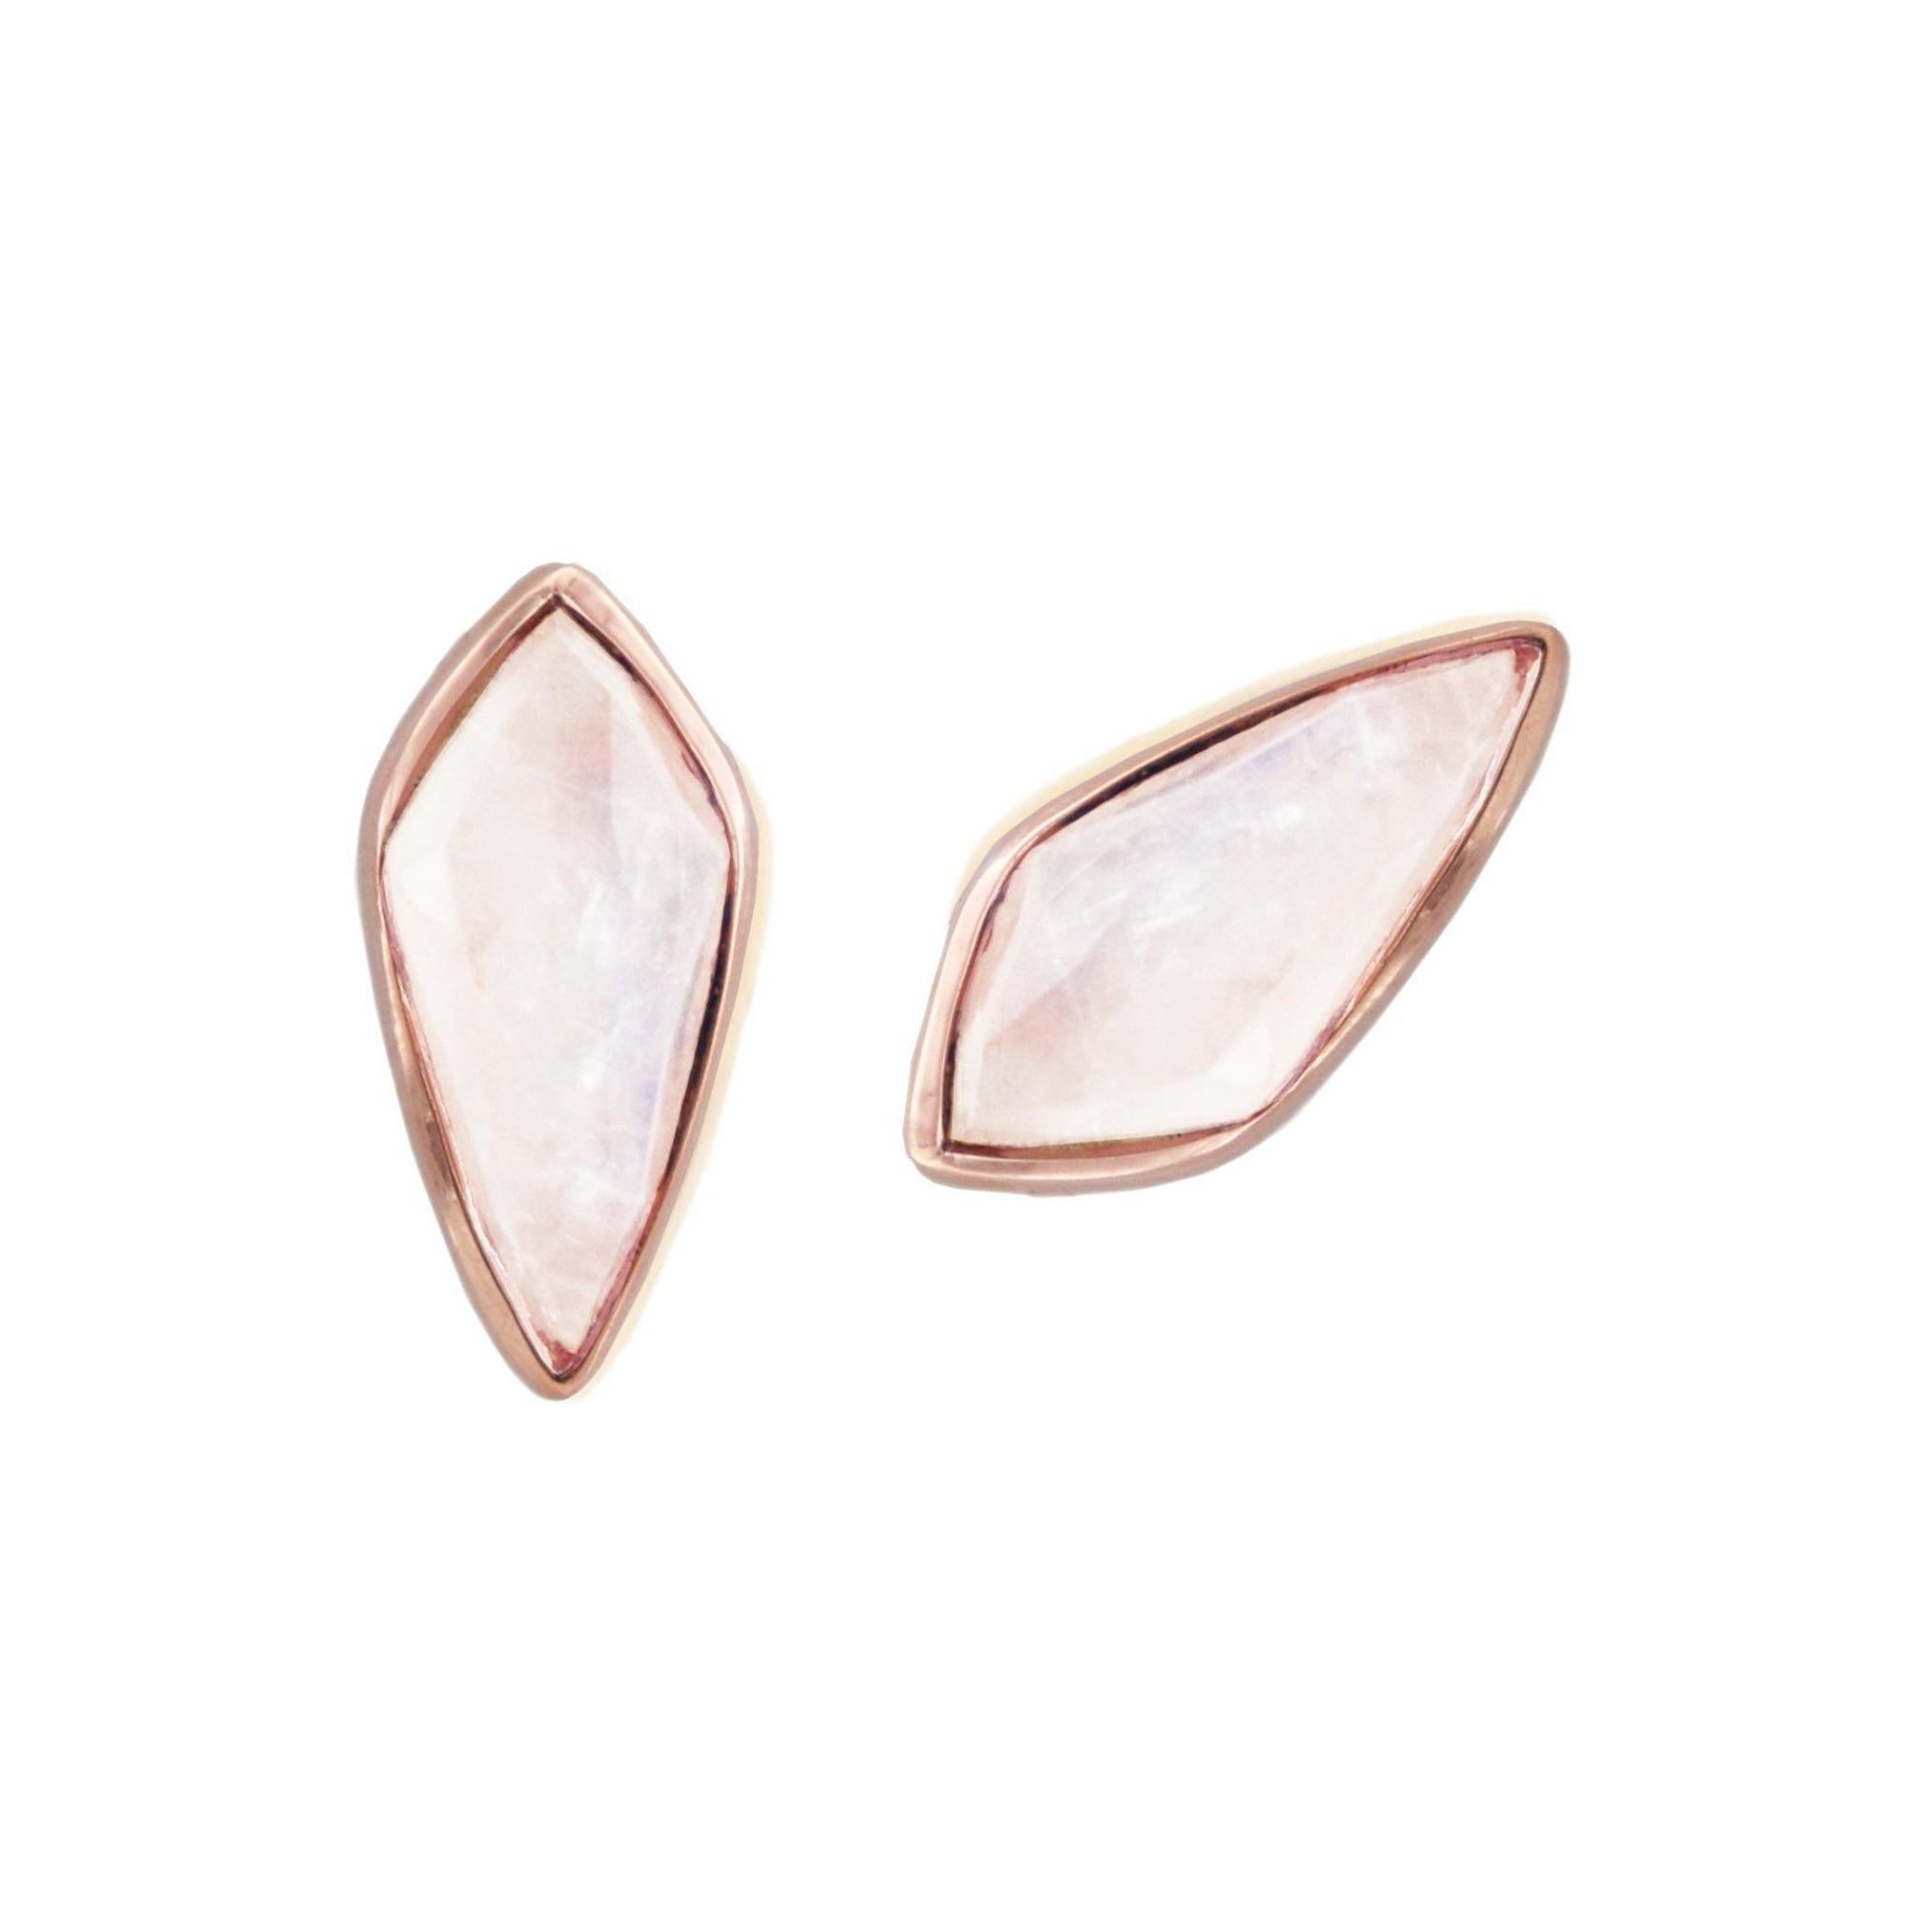 MIDI BRAVE STUD EARRINGS - RAINBOW MOONSTONE & ROSE GOLD - SO PRETTY CARA COTTER